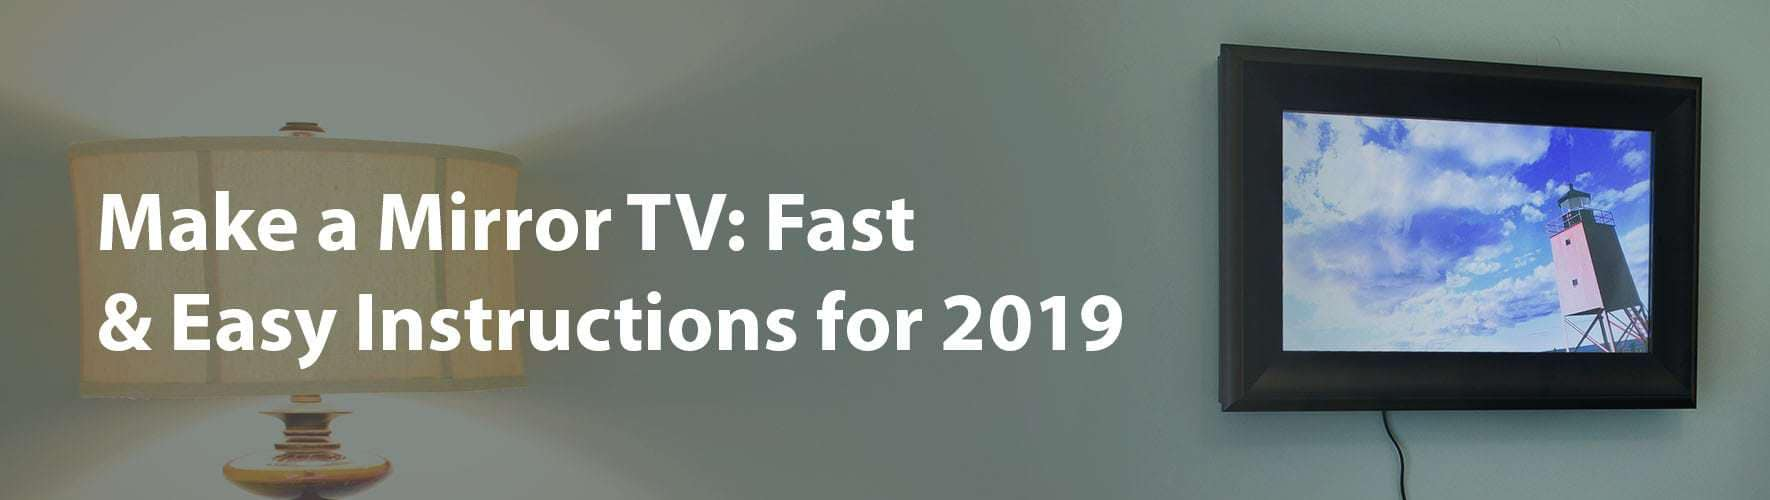 Make A Mirror Tv Fast Easy Instructions For 2019 New